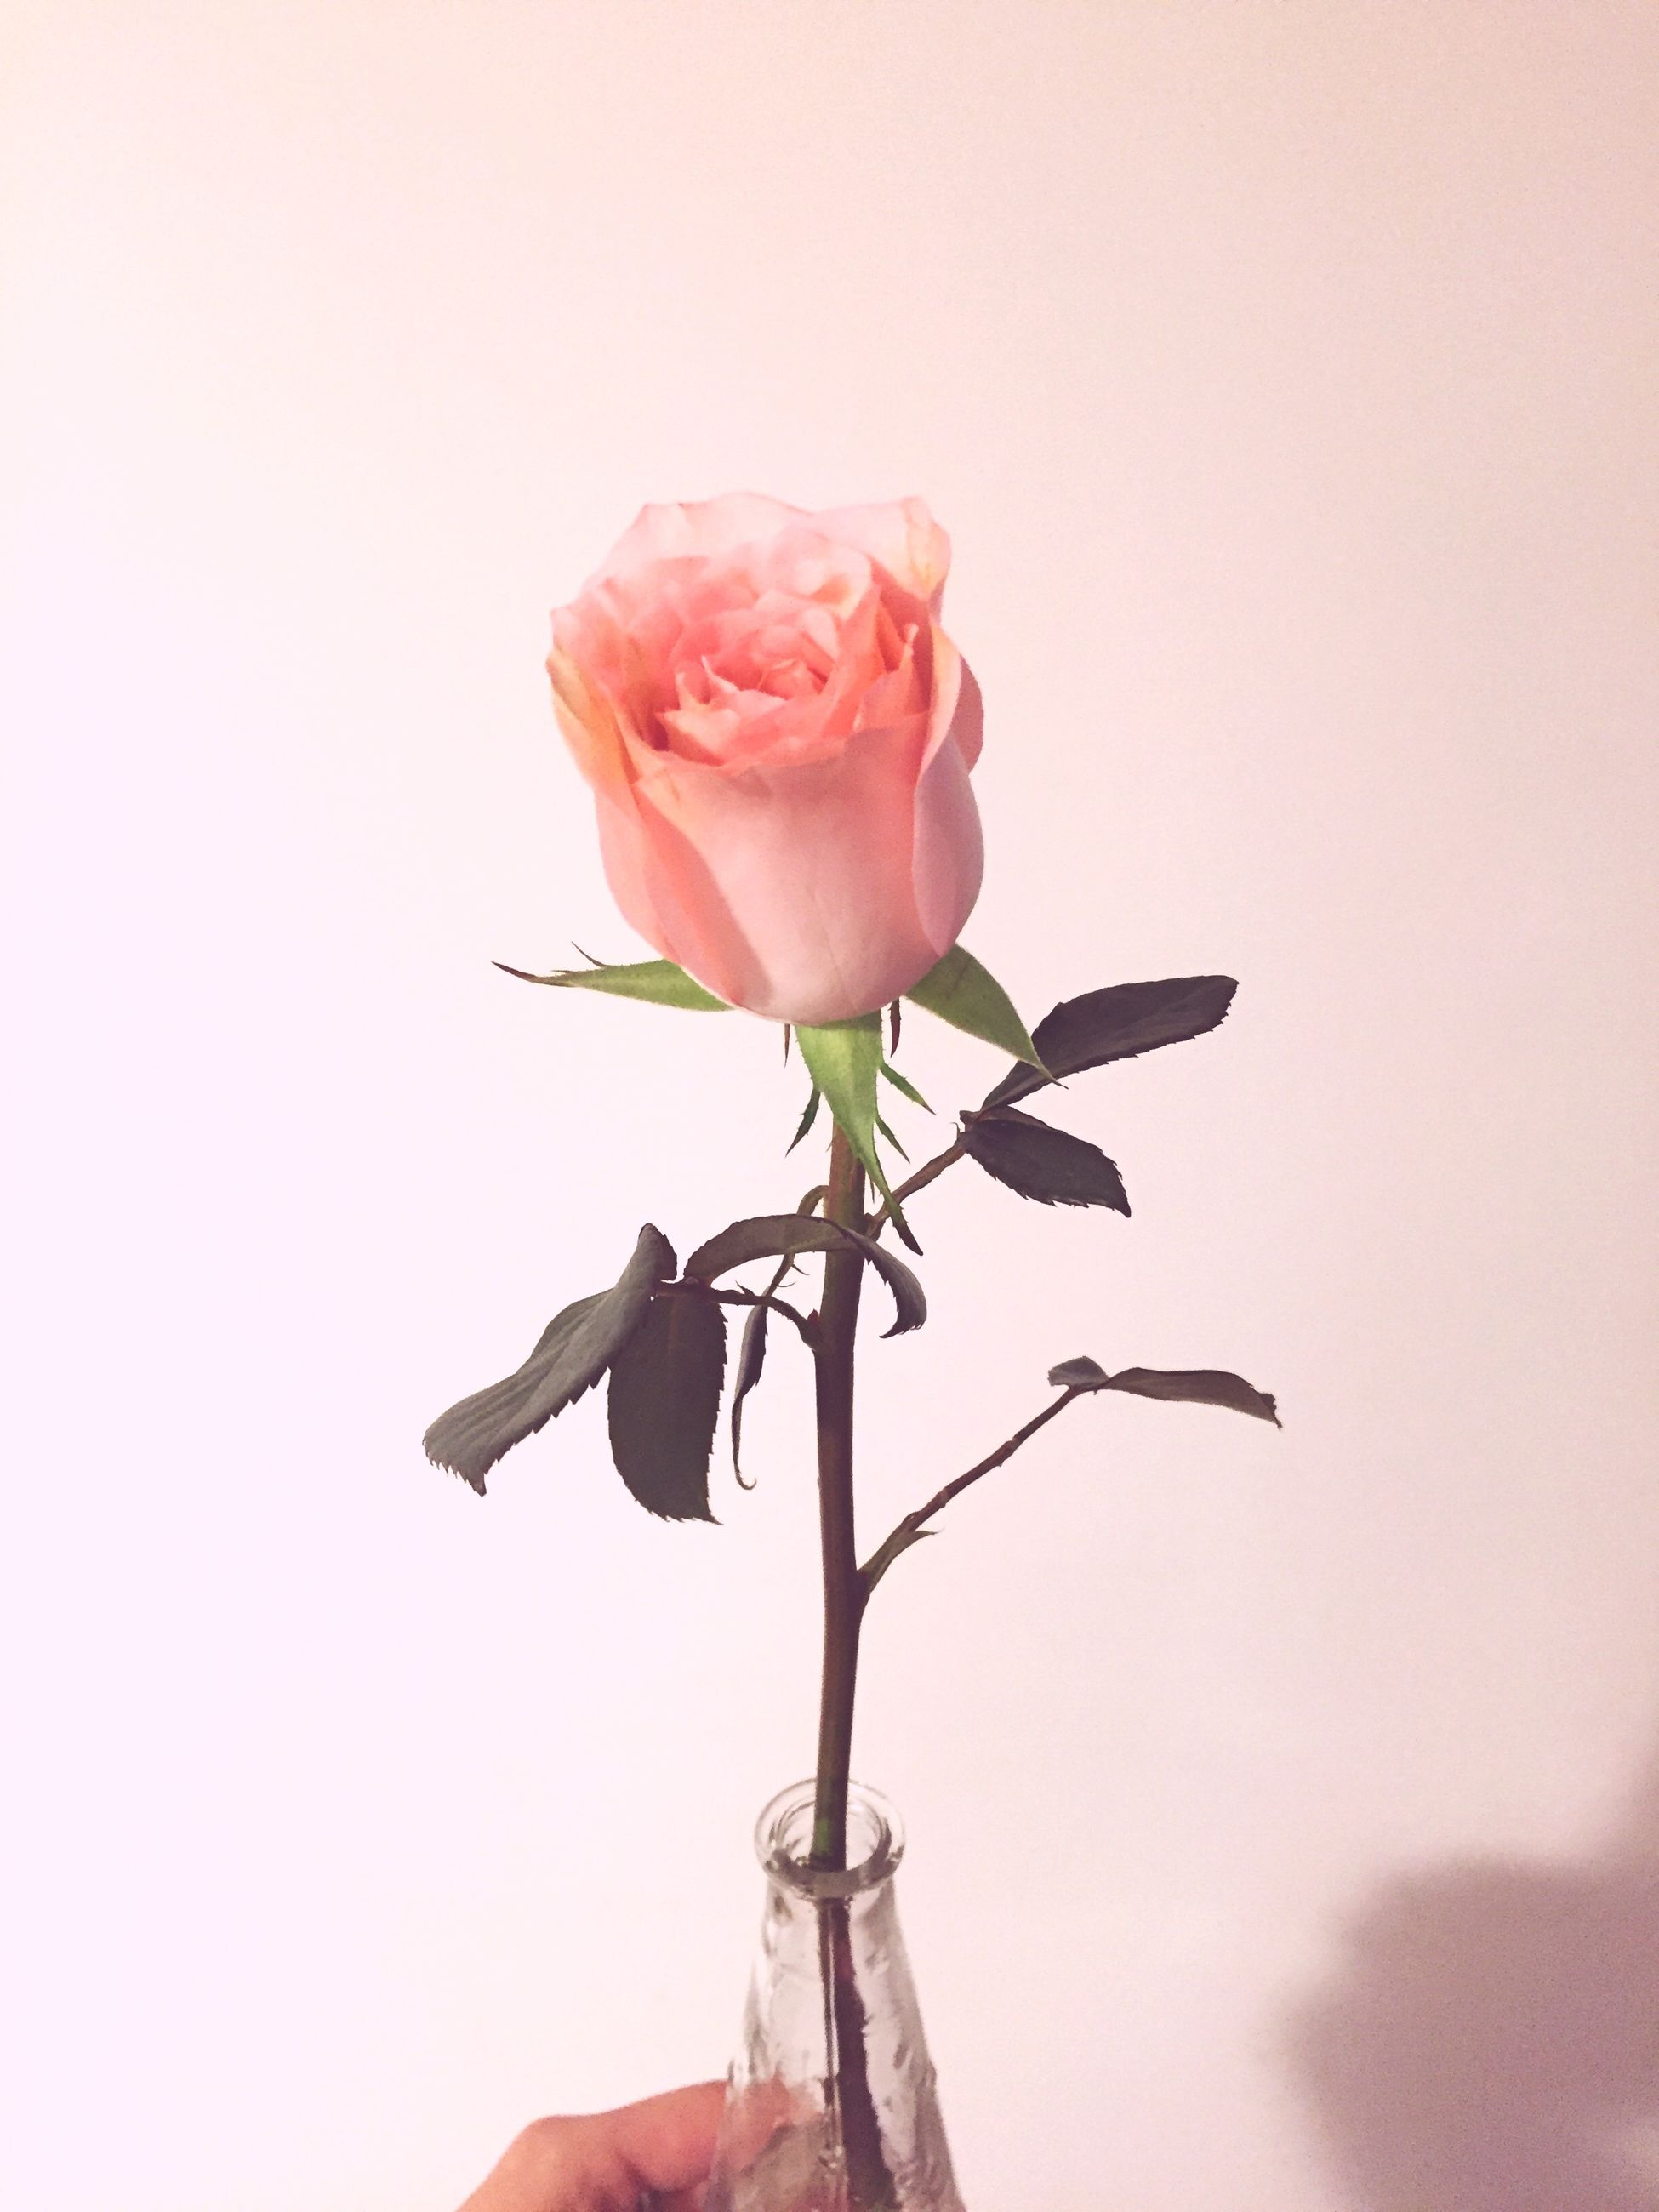 flower, petal, freshness, fragility, flower head, rose - flower, pink color, stem, beauty in nature, close-up, single flower, bud, nature, growth, rose, focus on foreground, plant, blooming, pink, no people